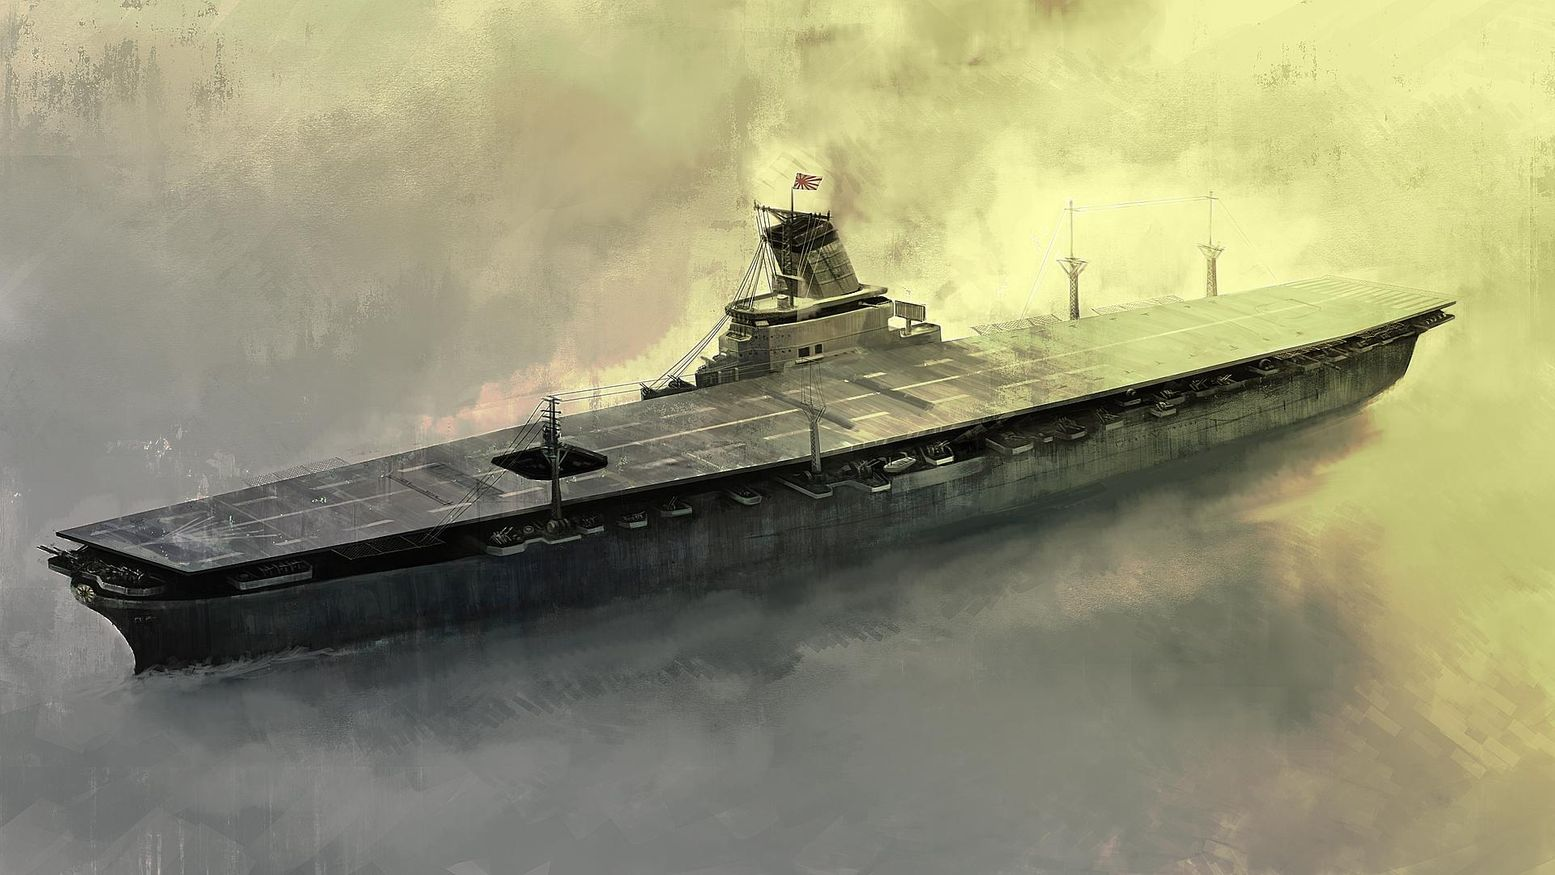 The Sad Tale of the Imperial Japanese Carrier Shinano